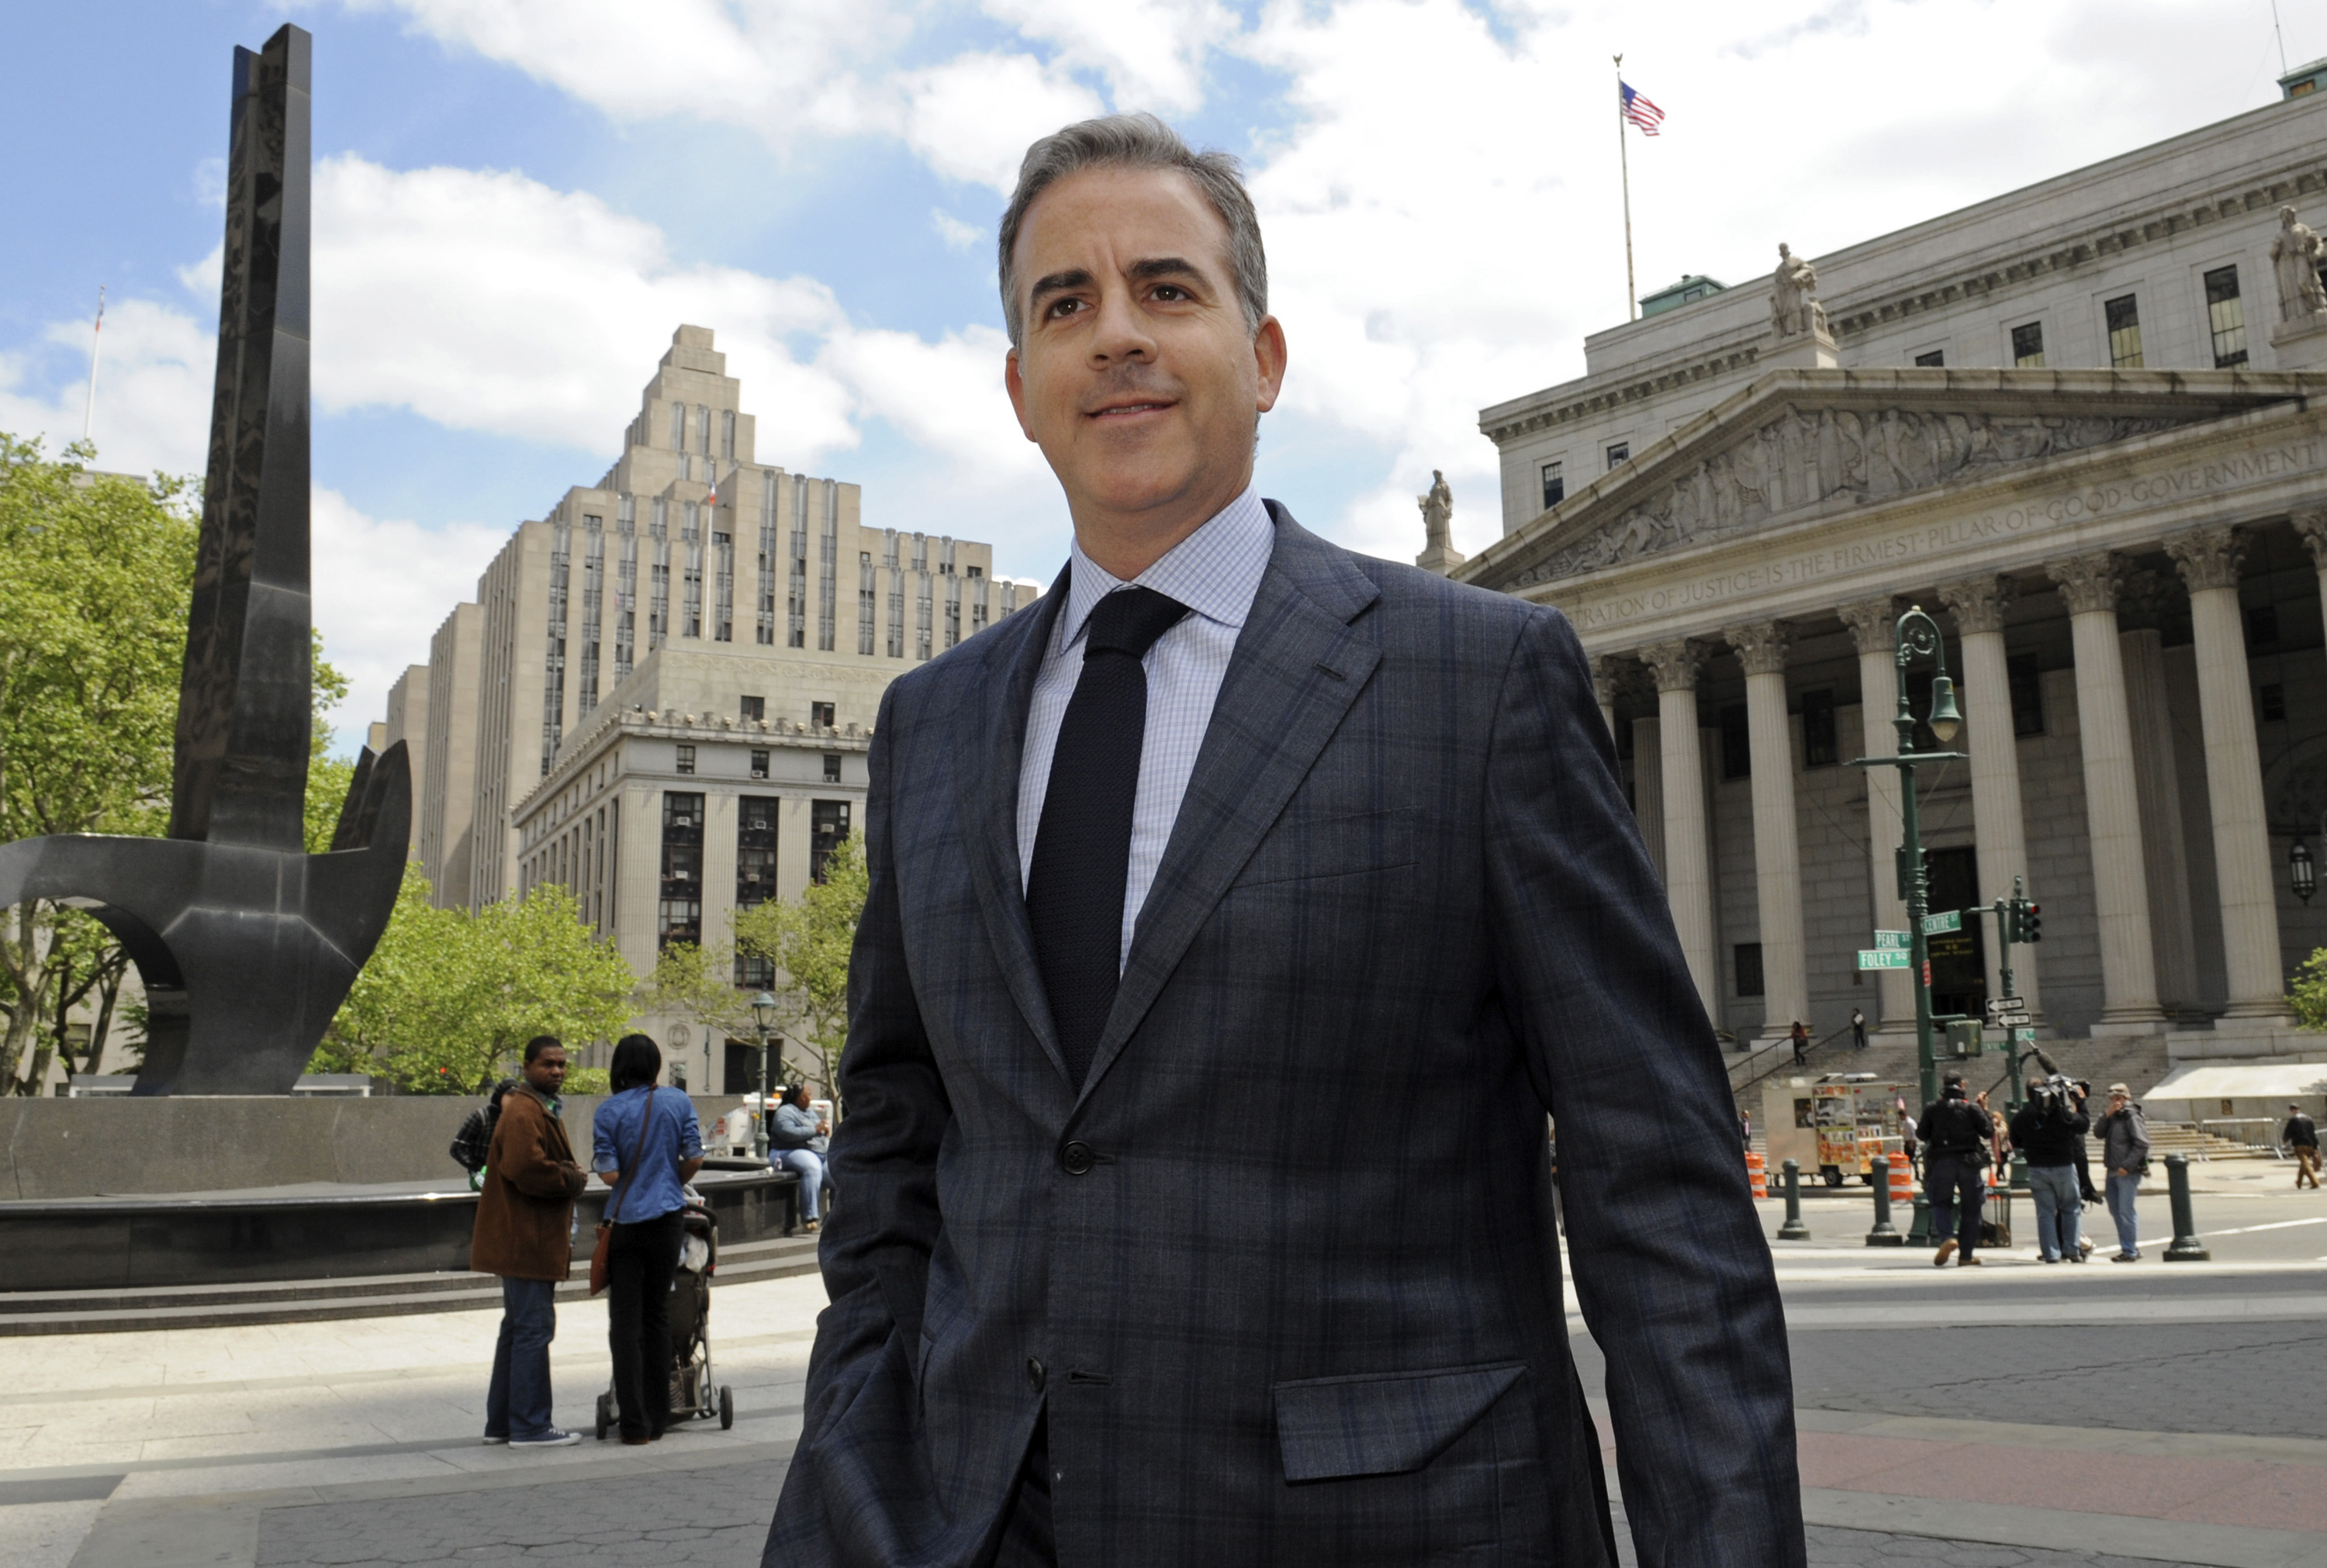 Level Global Investors Co-Founder Anthony Chiasson Sentencing On Insider Trading